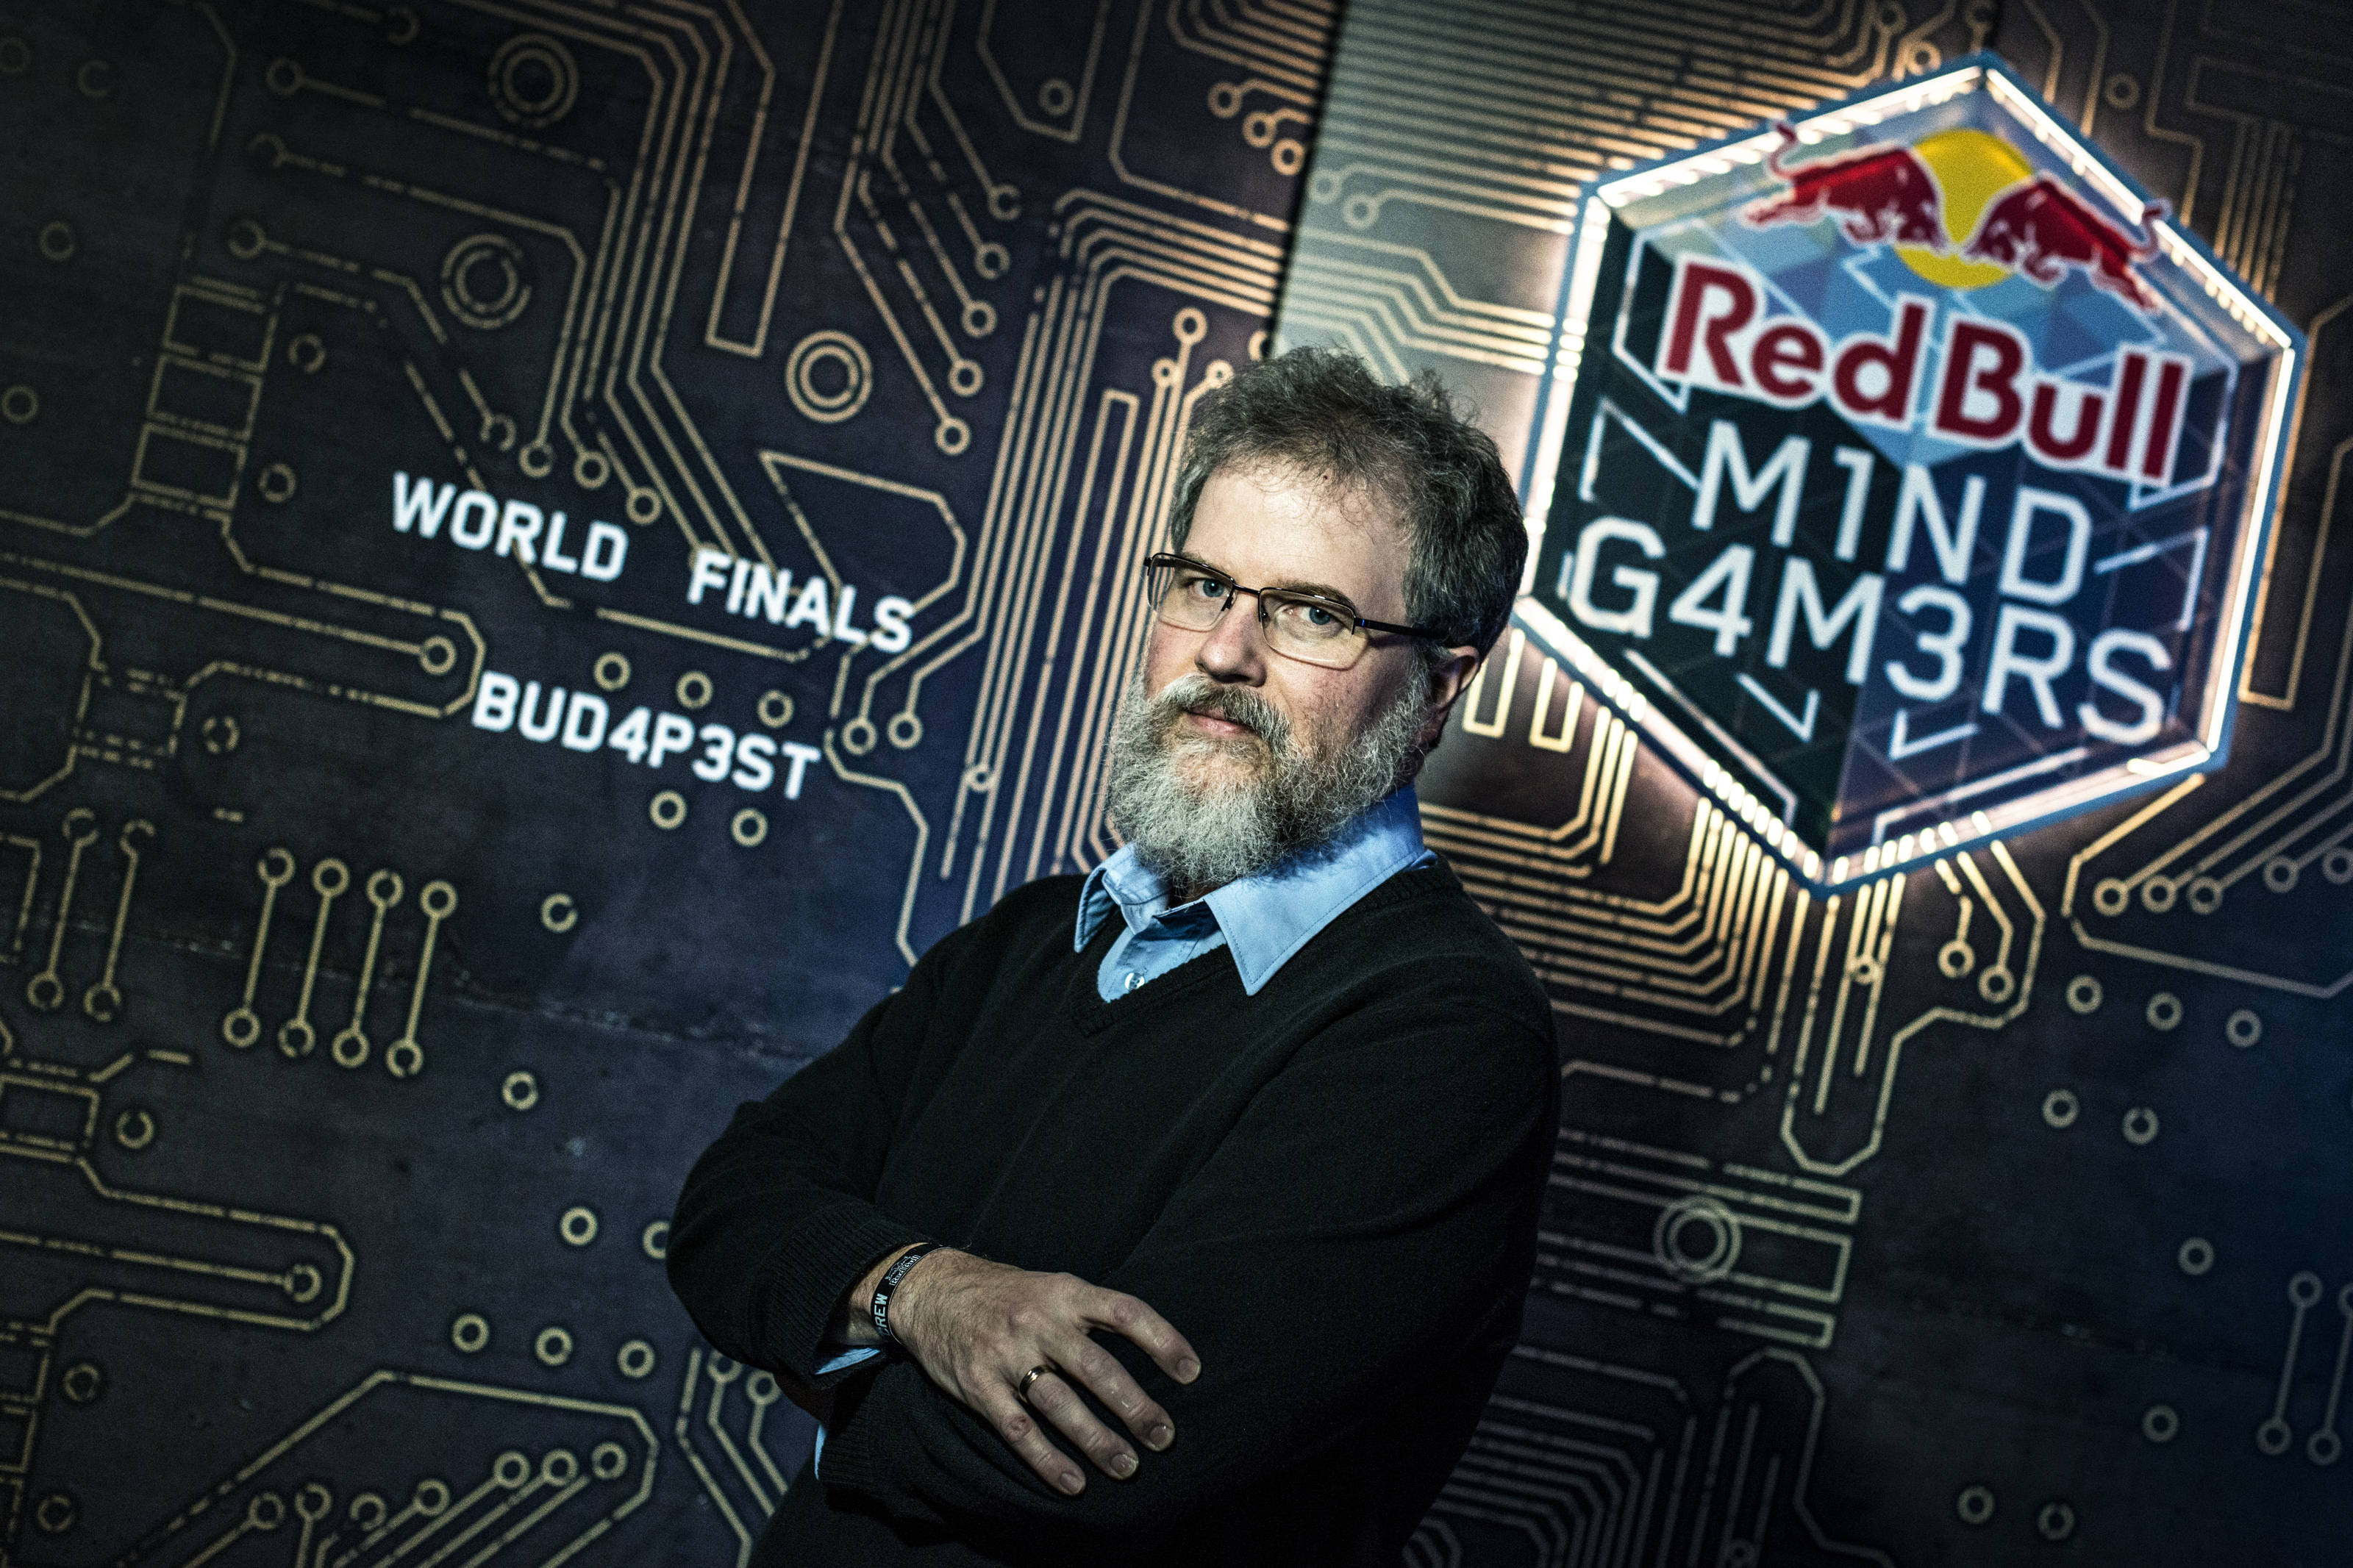 Dr. Scott Nicholson - Red Bull Escape Room World Championship 2017